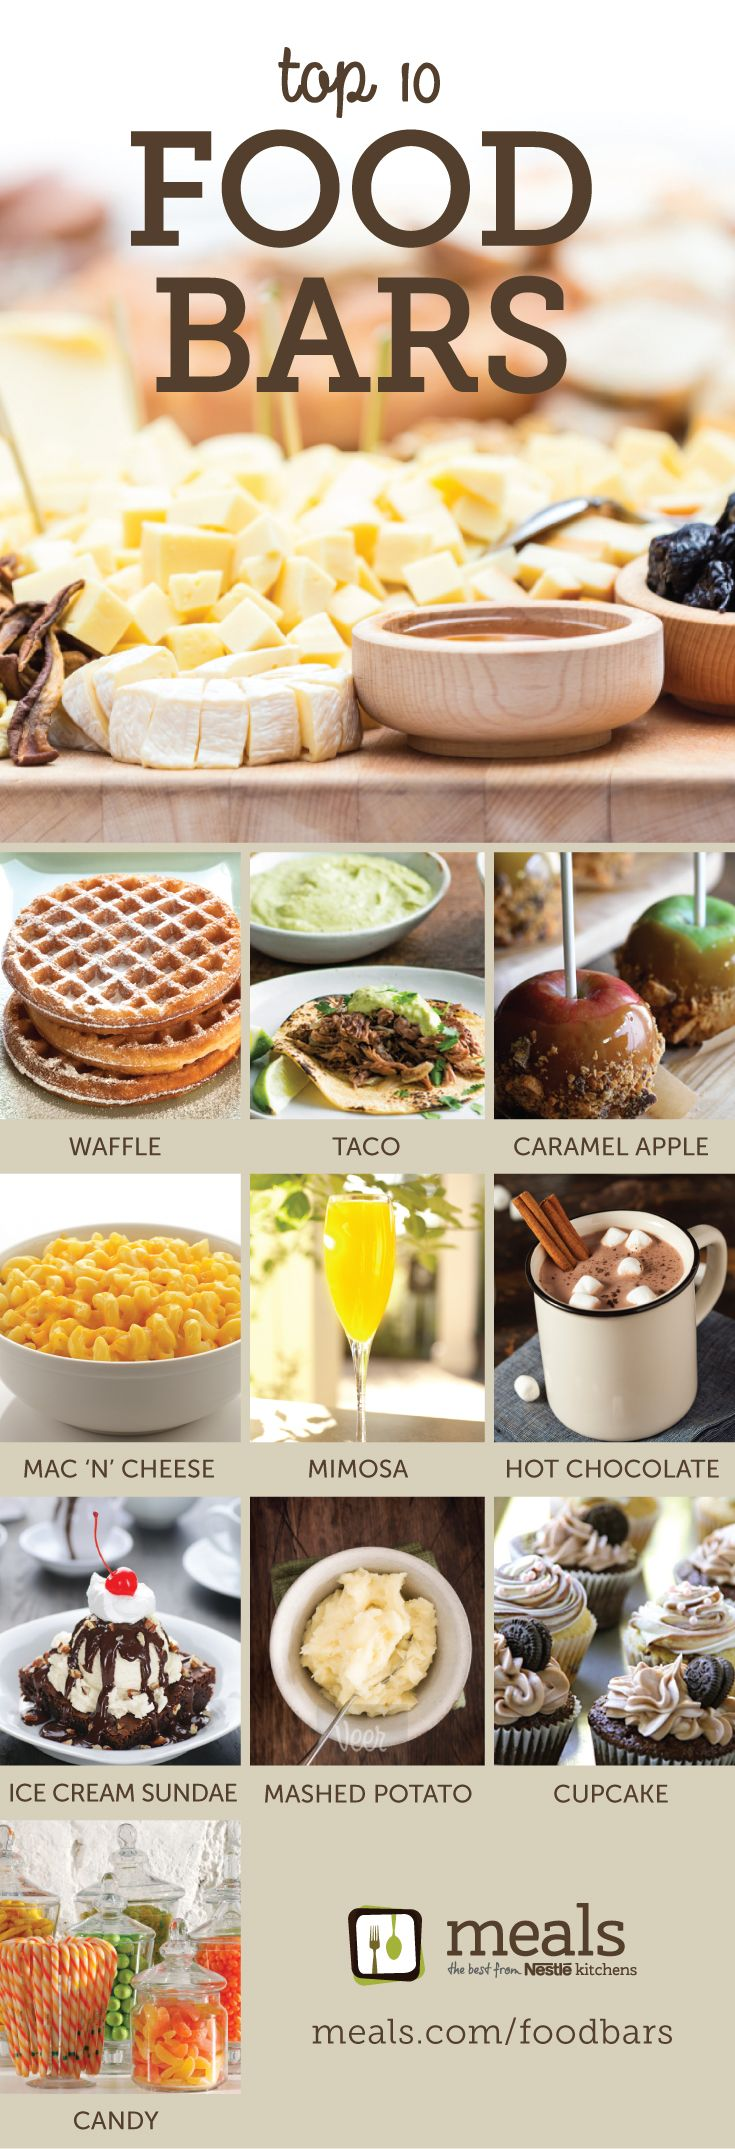 Top 10 Food Bars   Meals.com - Top 10 Food Bars are here for the holidays - and beyond! From Taco or Mac & Cheese bars to Mimosa or Hot Chocolate buffets, the best bases and tastiest toppings await for your entertaining or everyday enjoyment.Why settle for a one-size-fits-all meal when you can offer a variety to please every palate?! #foodbars #partyideas #tacobar #potatobar #mimosabar